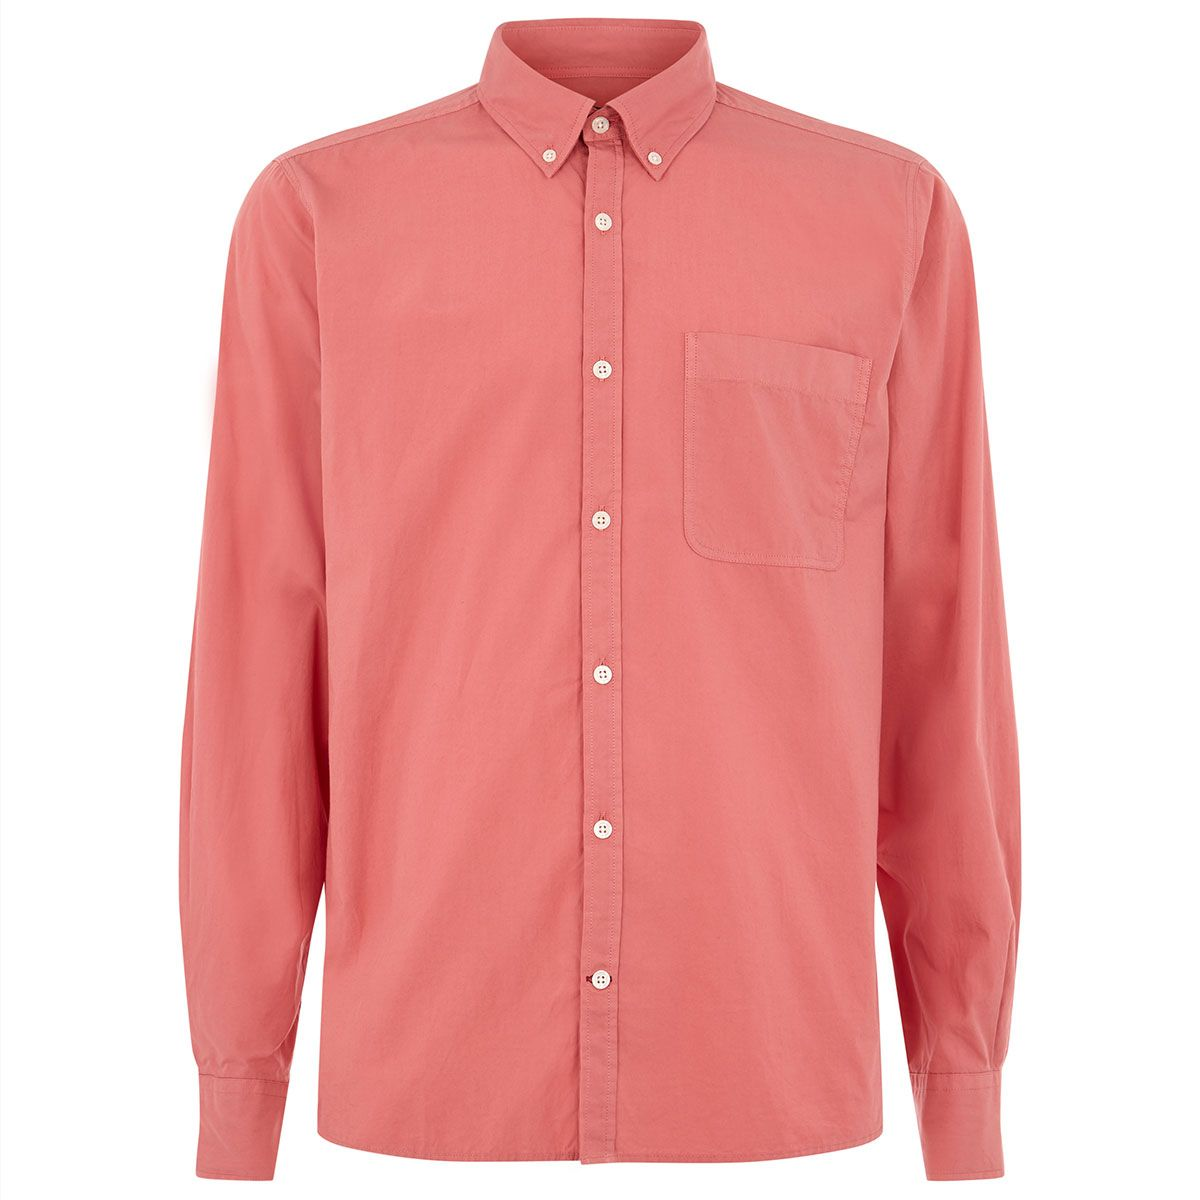 Oliver Sweeney Otley Coral Pink - Casual Oxford Shirt